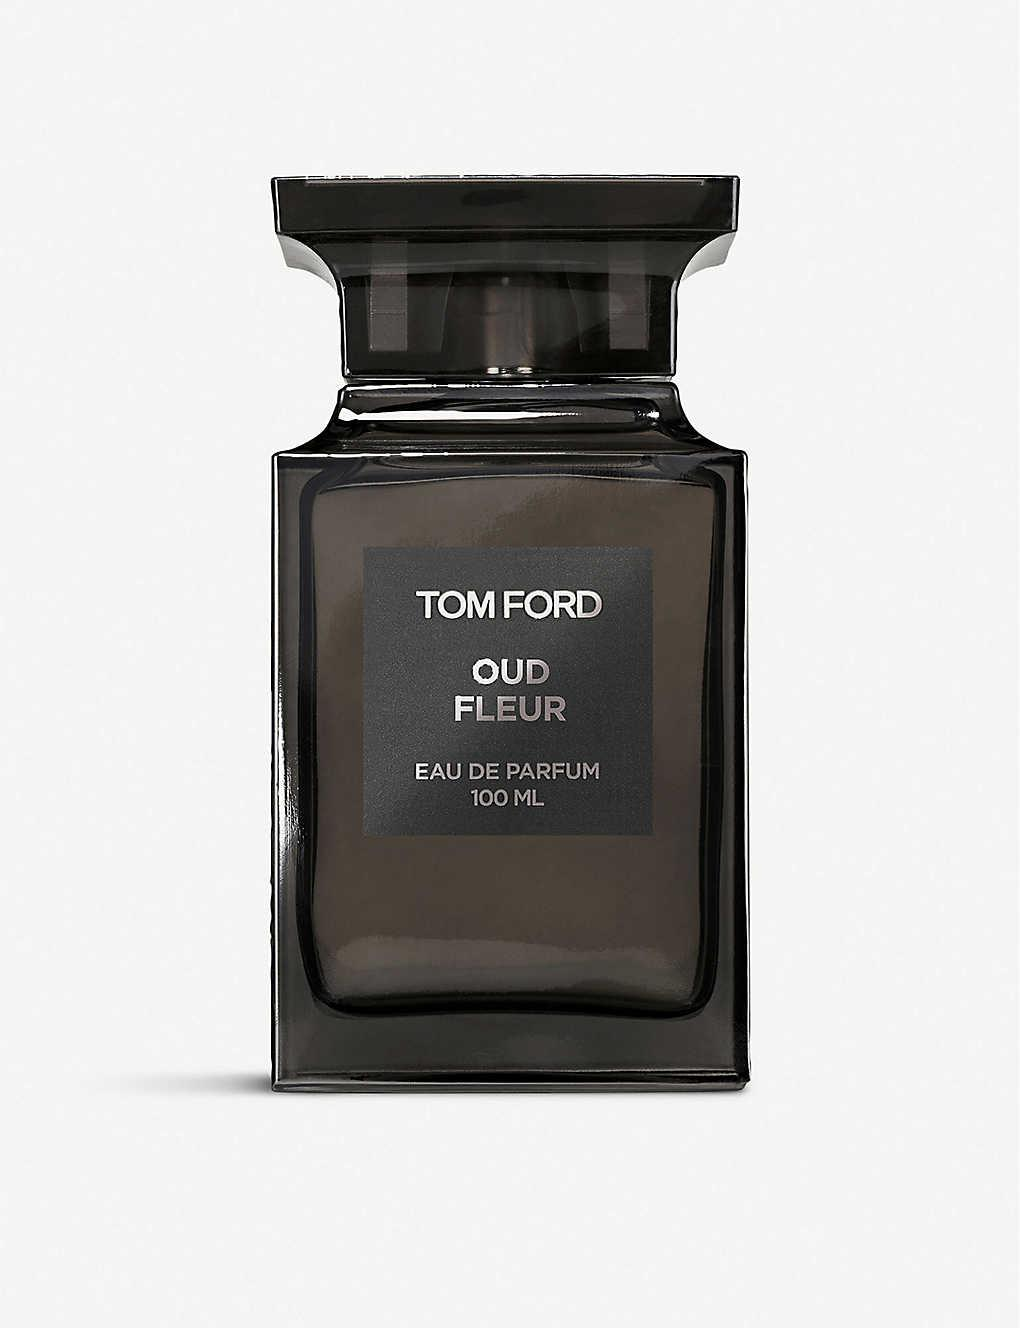 Tom Ford Oud Fleur for Unisex Eau De Parfum 100ML